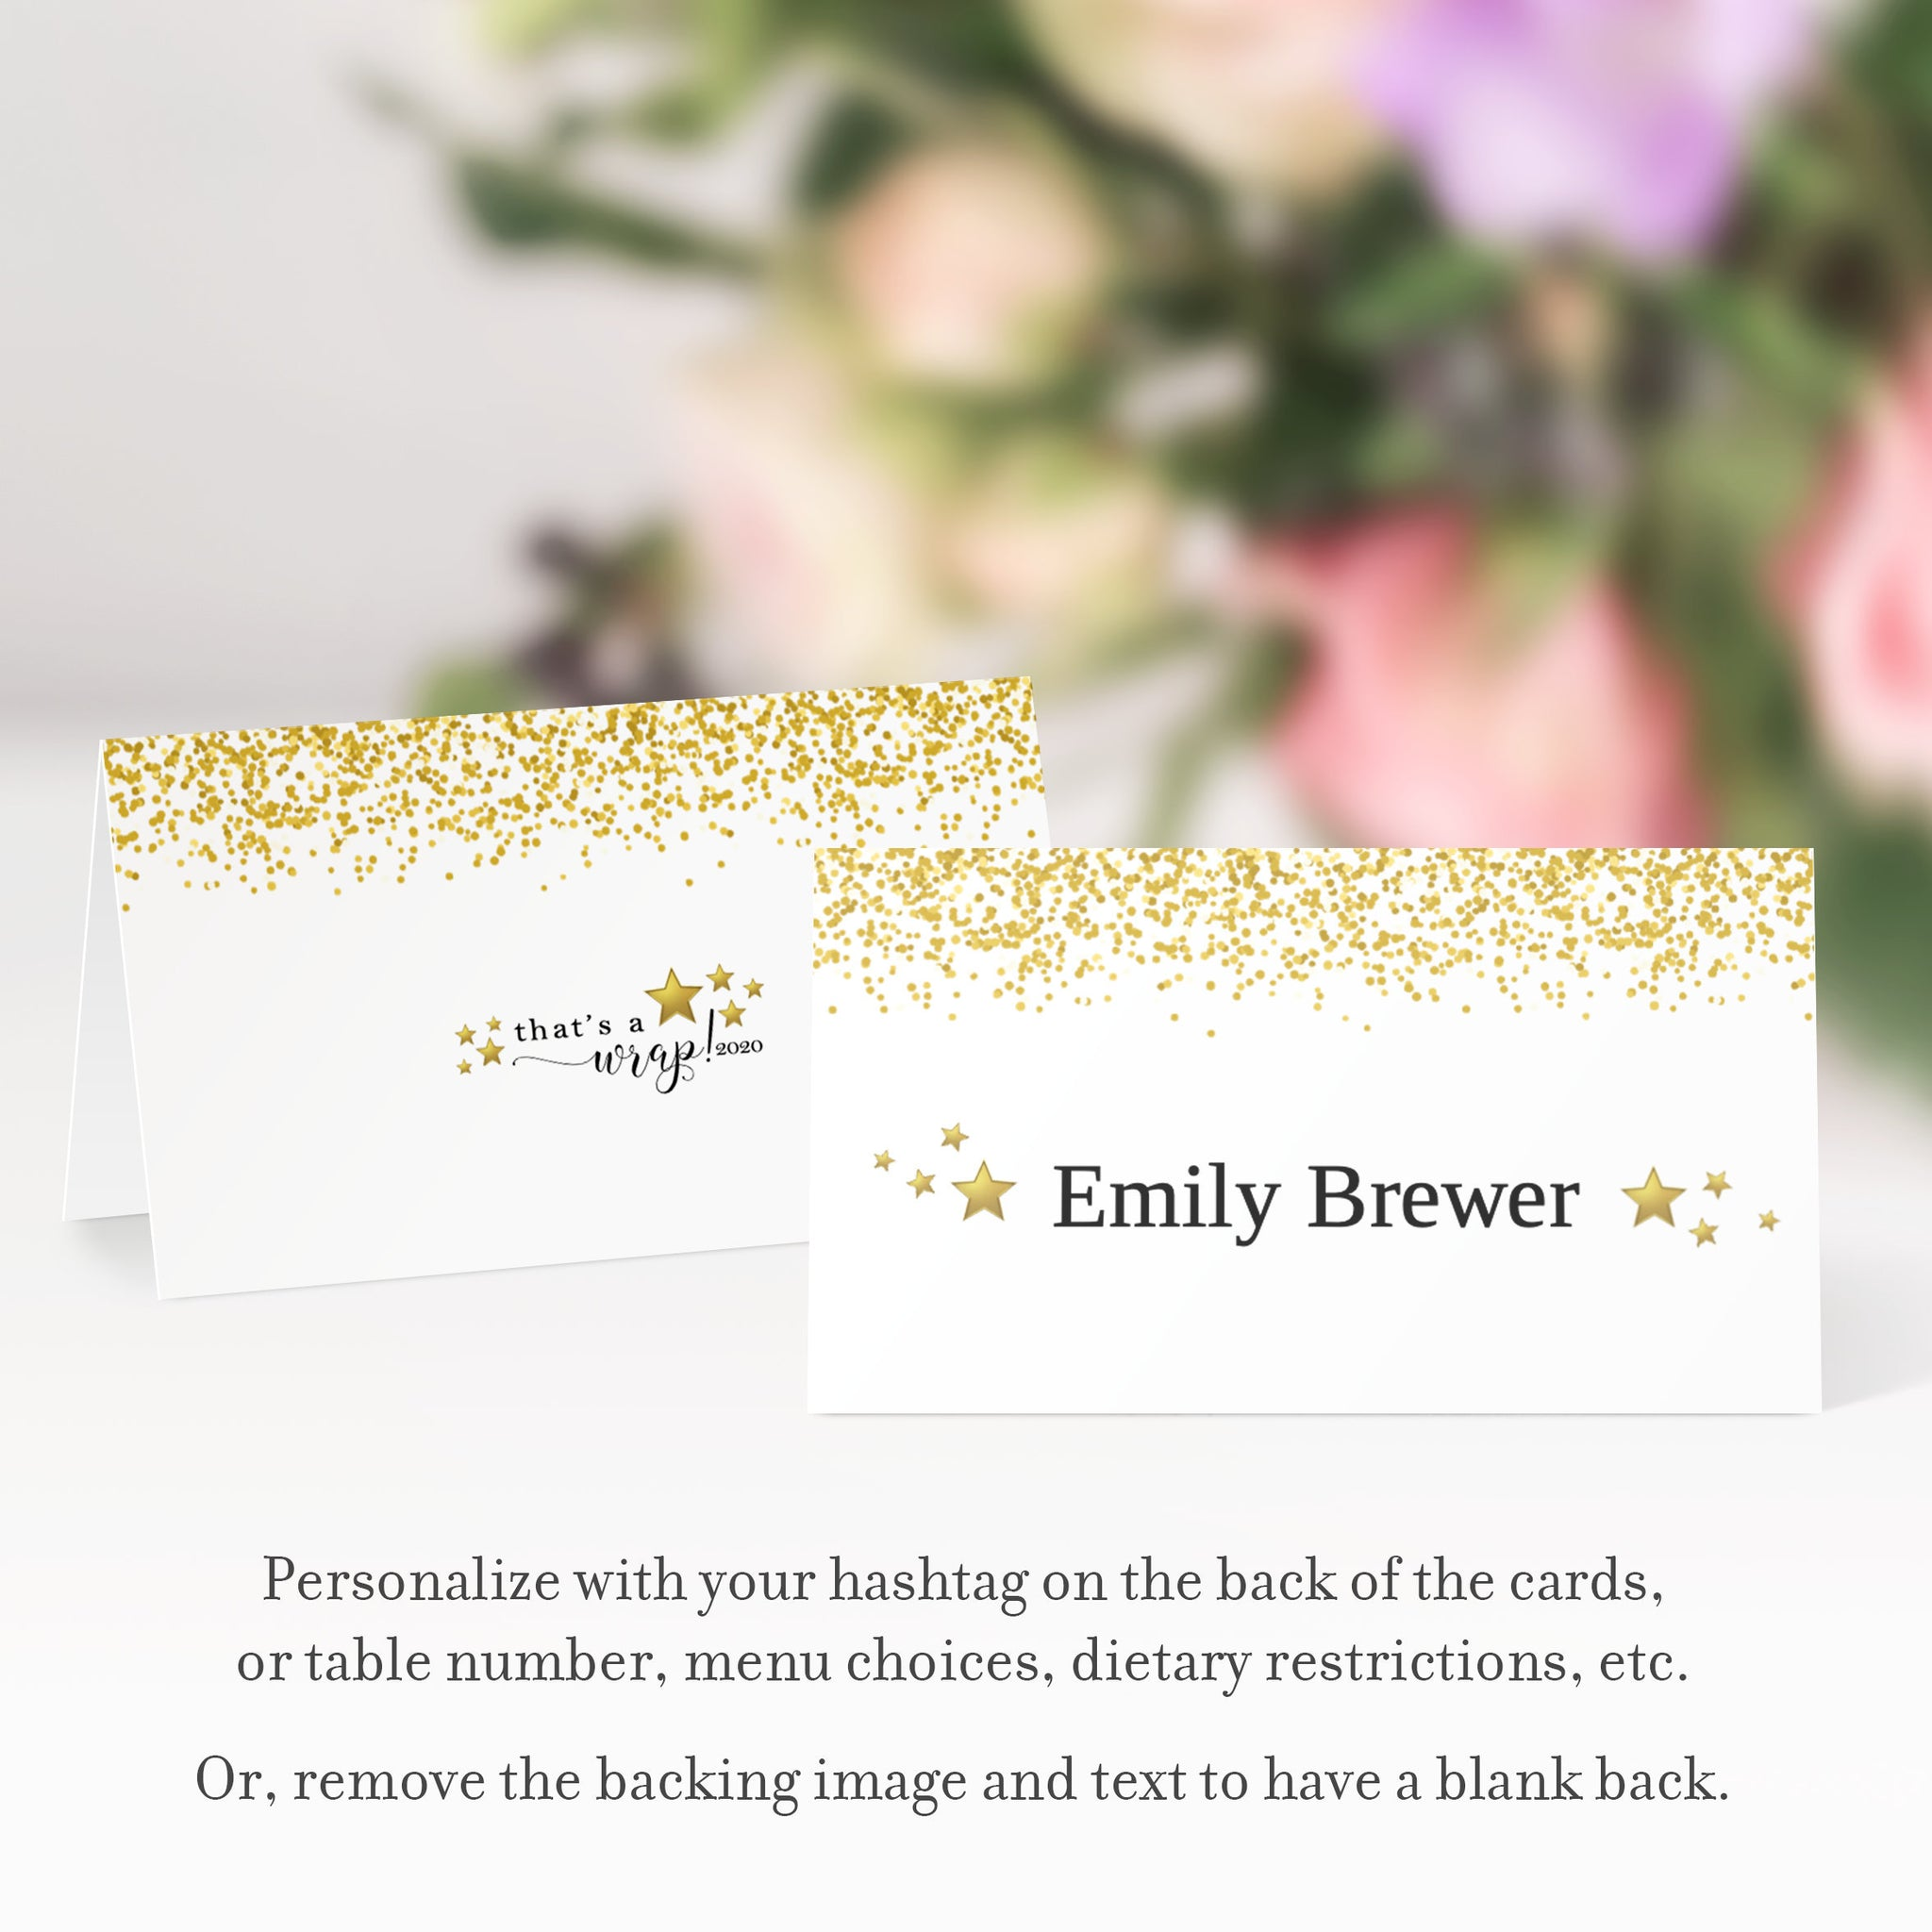 2020 New Years Eve Place Cards Template, Printable New Years Eve Decorations, Personalized New Years Name Cards, DIGITAL DOWNLOAD - NY100